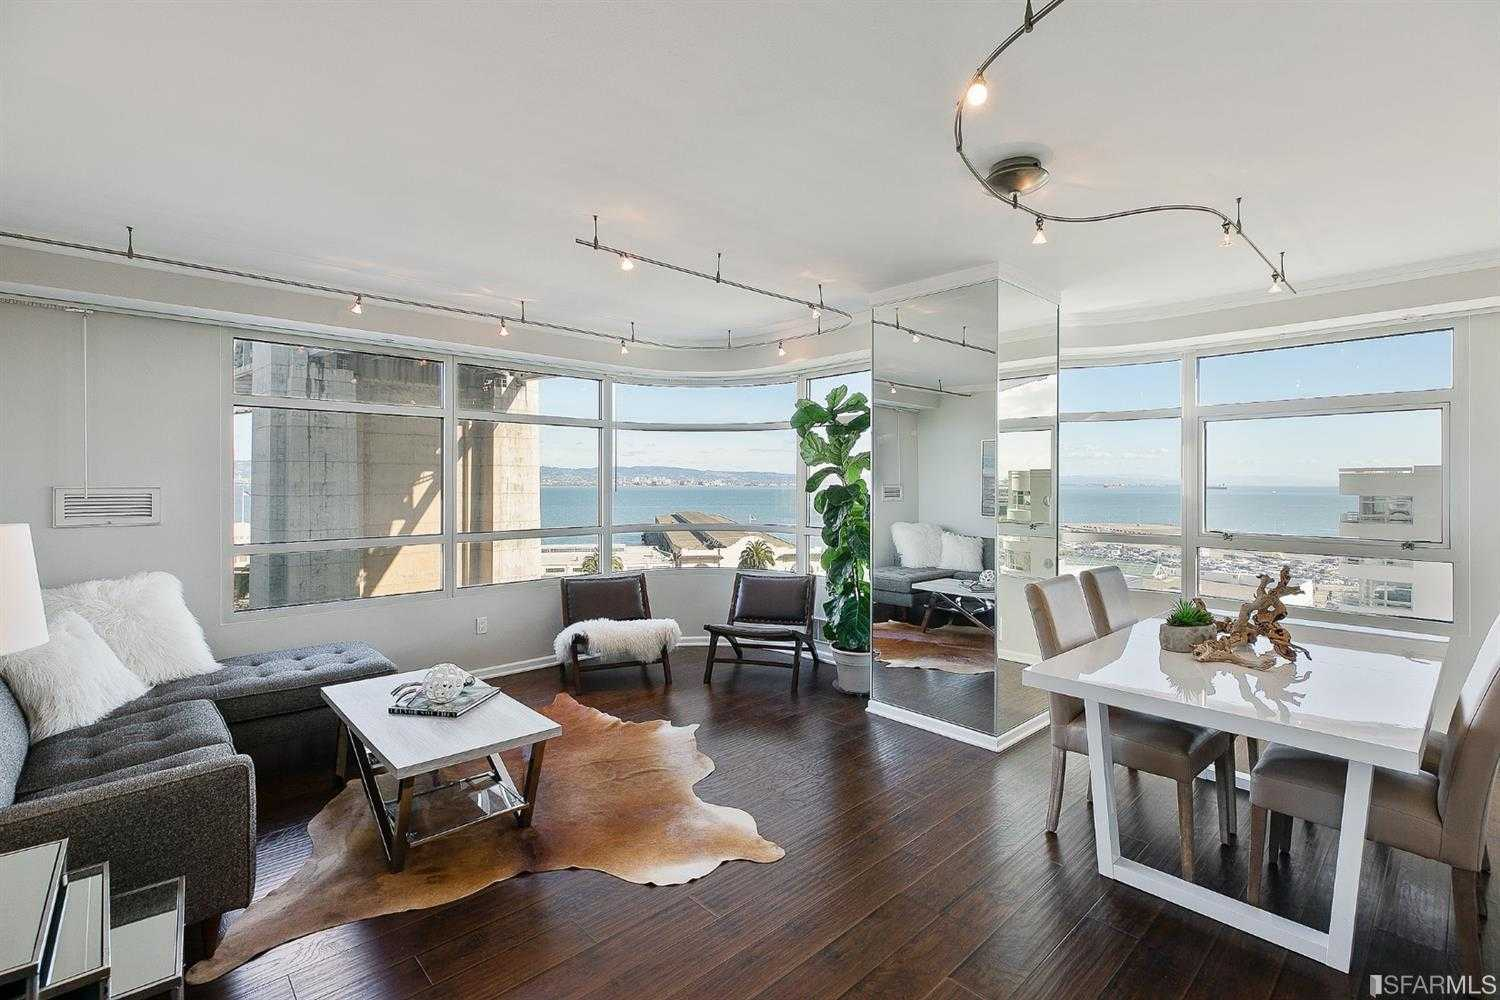 $1,675,000 - 3Br/2Ba -  for Sale in San Francisco